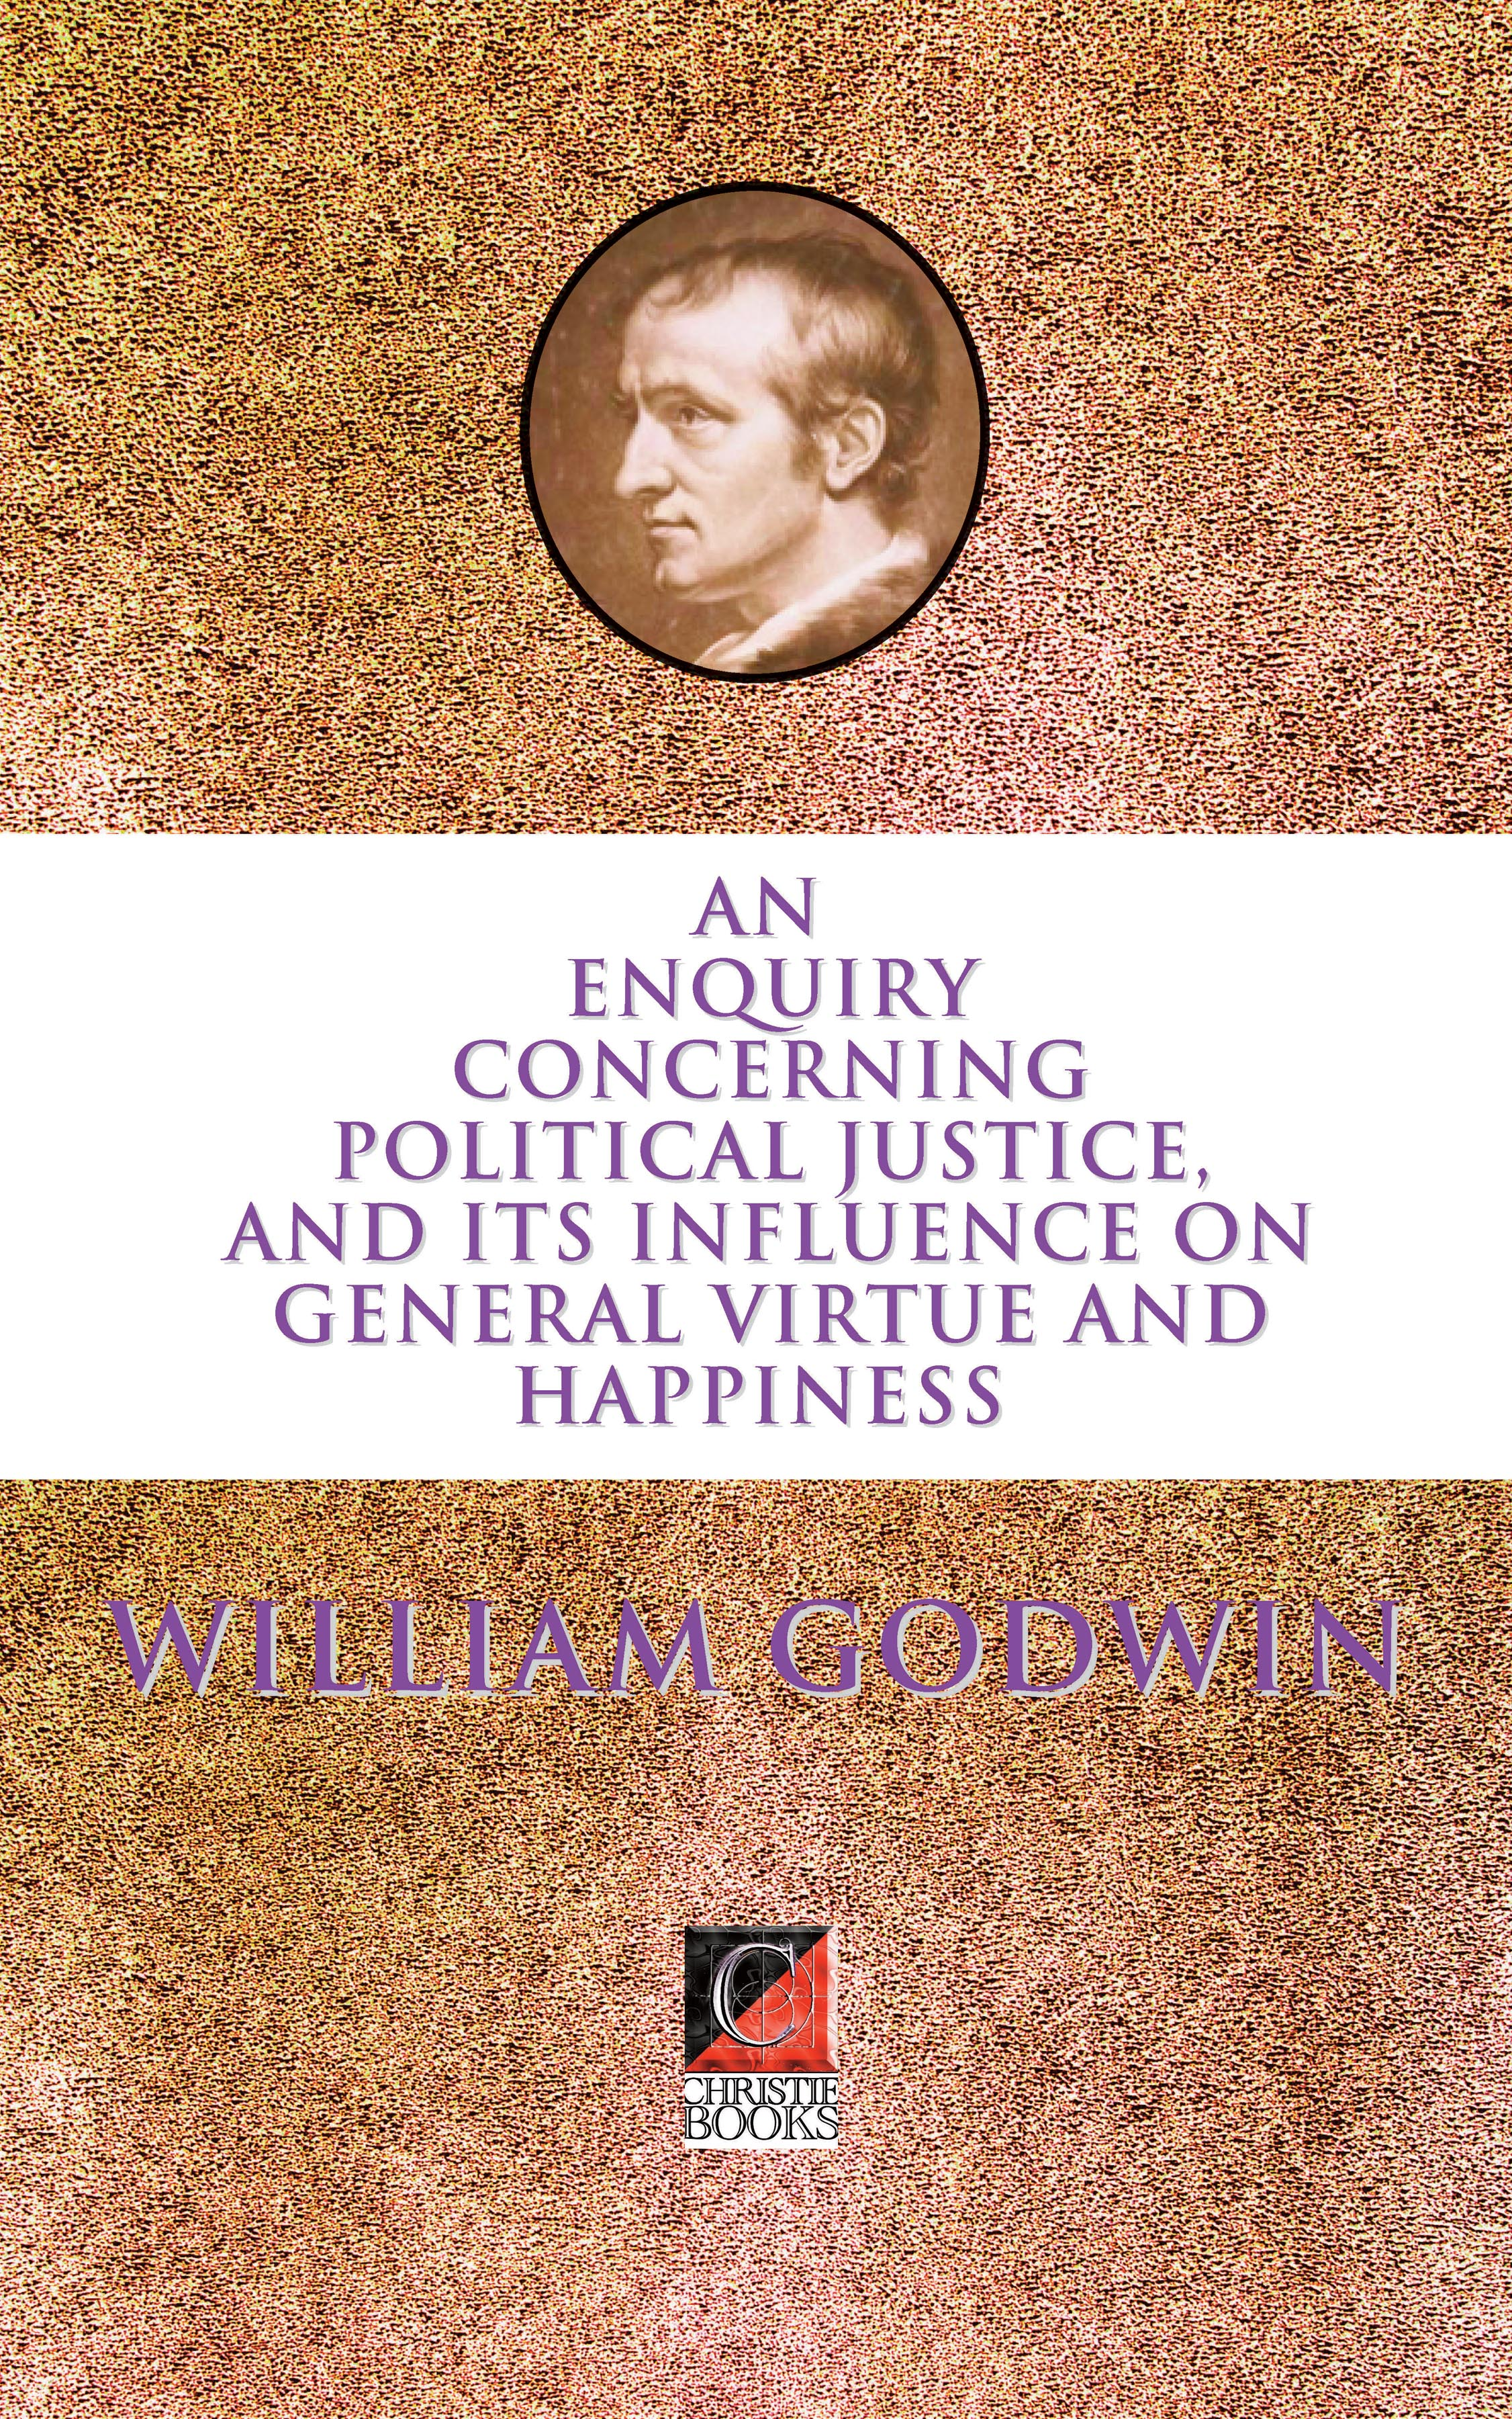 AN ENQUIRY CONCERNING POLITICAL JUSTICE, AND ITS INFLUENCE ON GENERAL VIRTUE AND HAPPINESS — William Godwin